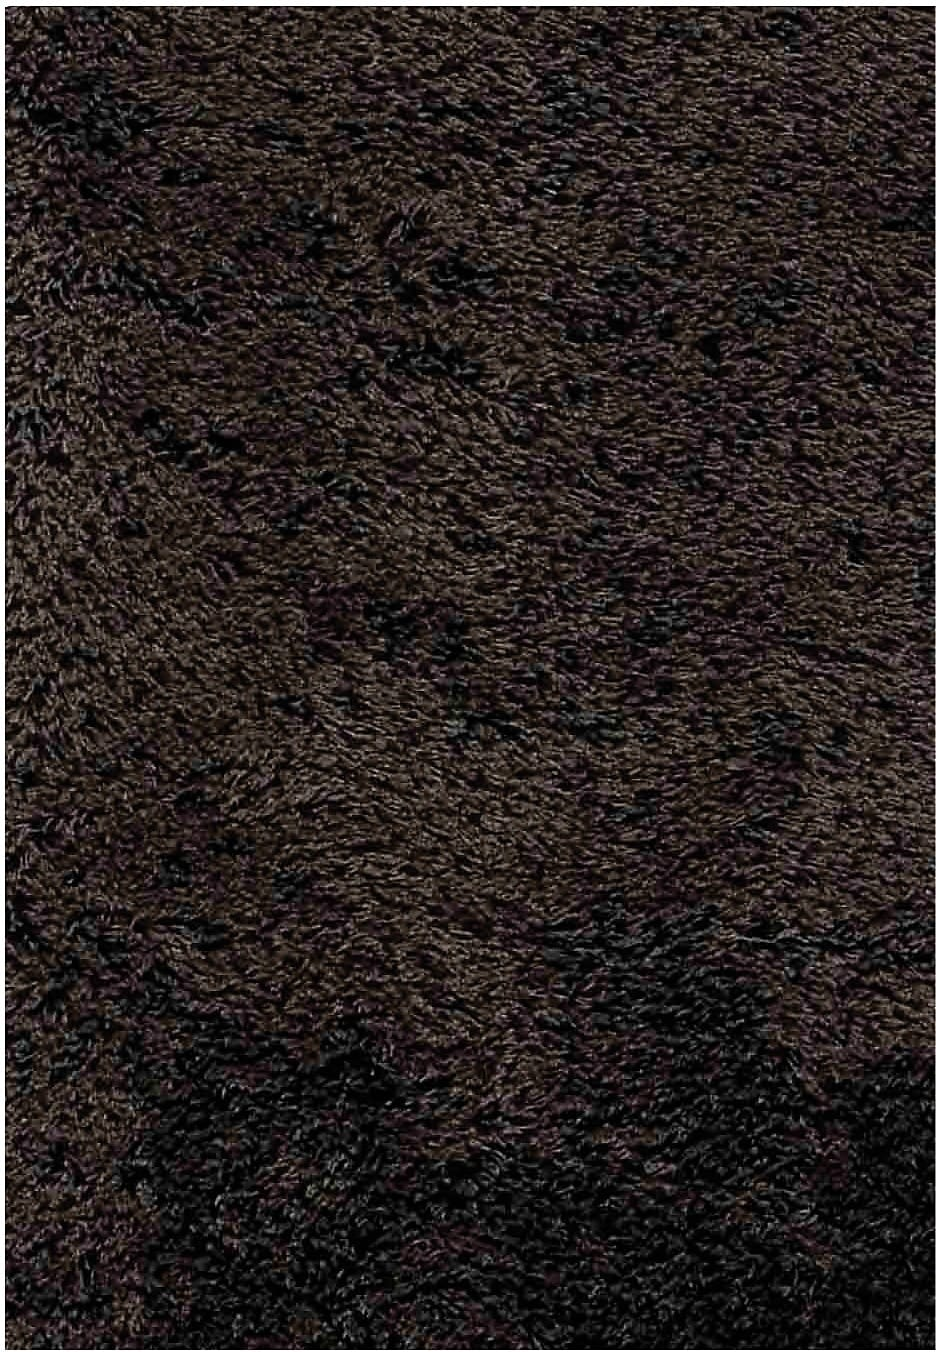 Rugs - Shaggy Charcoal Area Rug – 8'x 11'